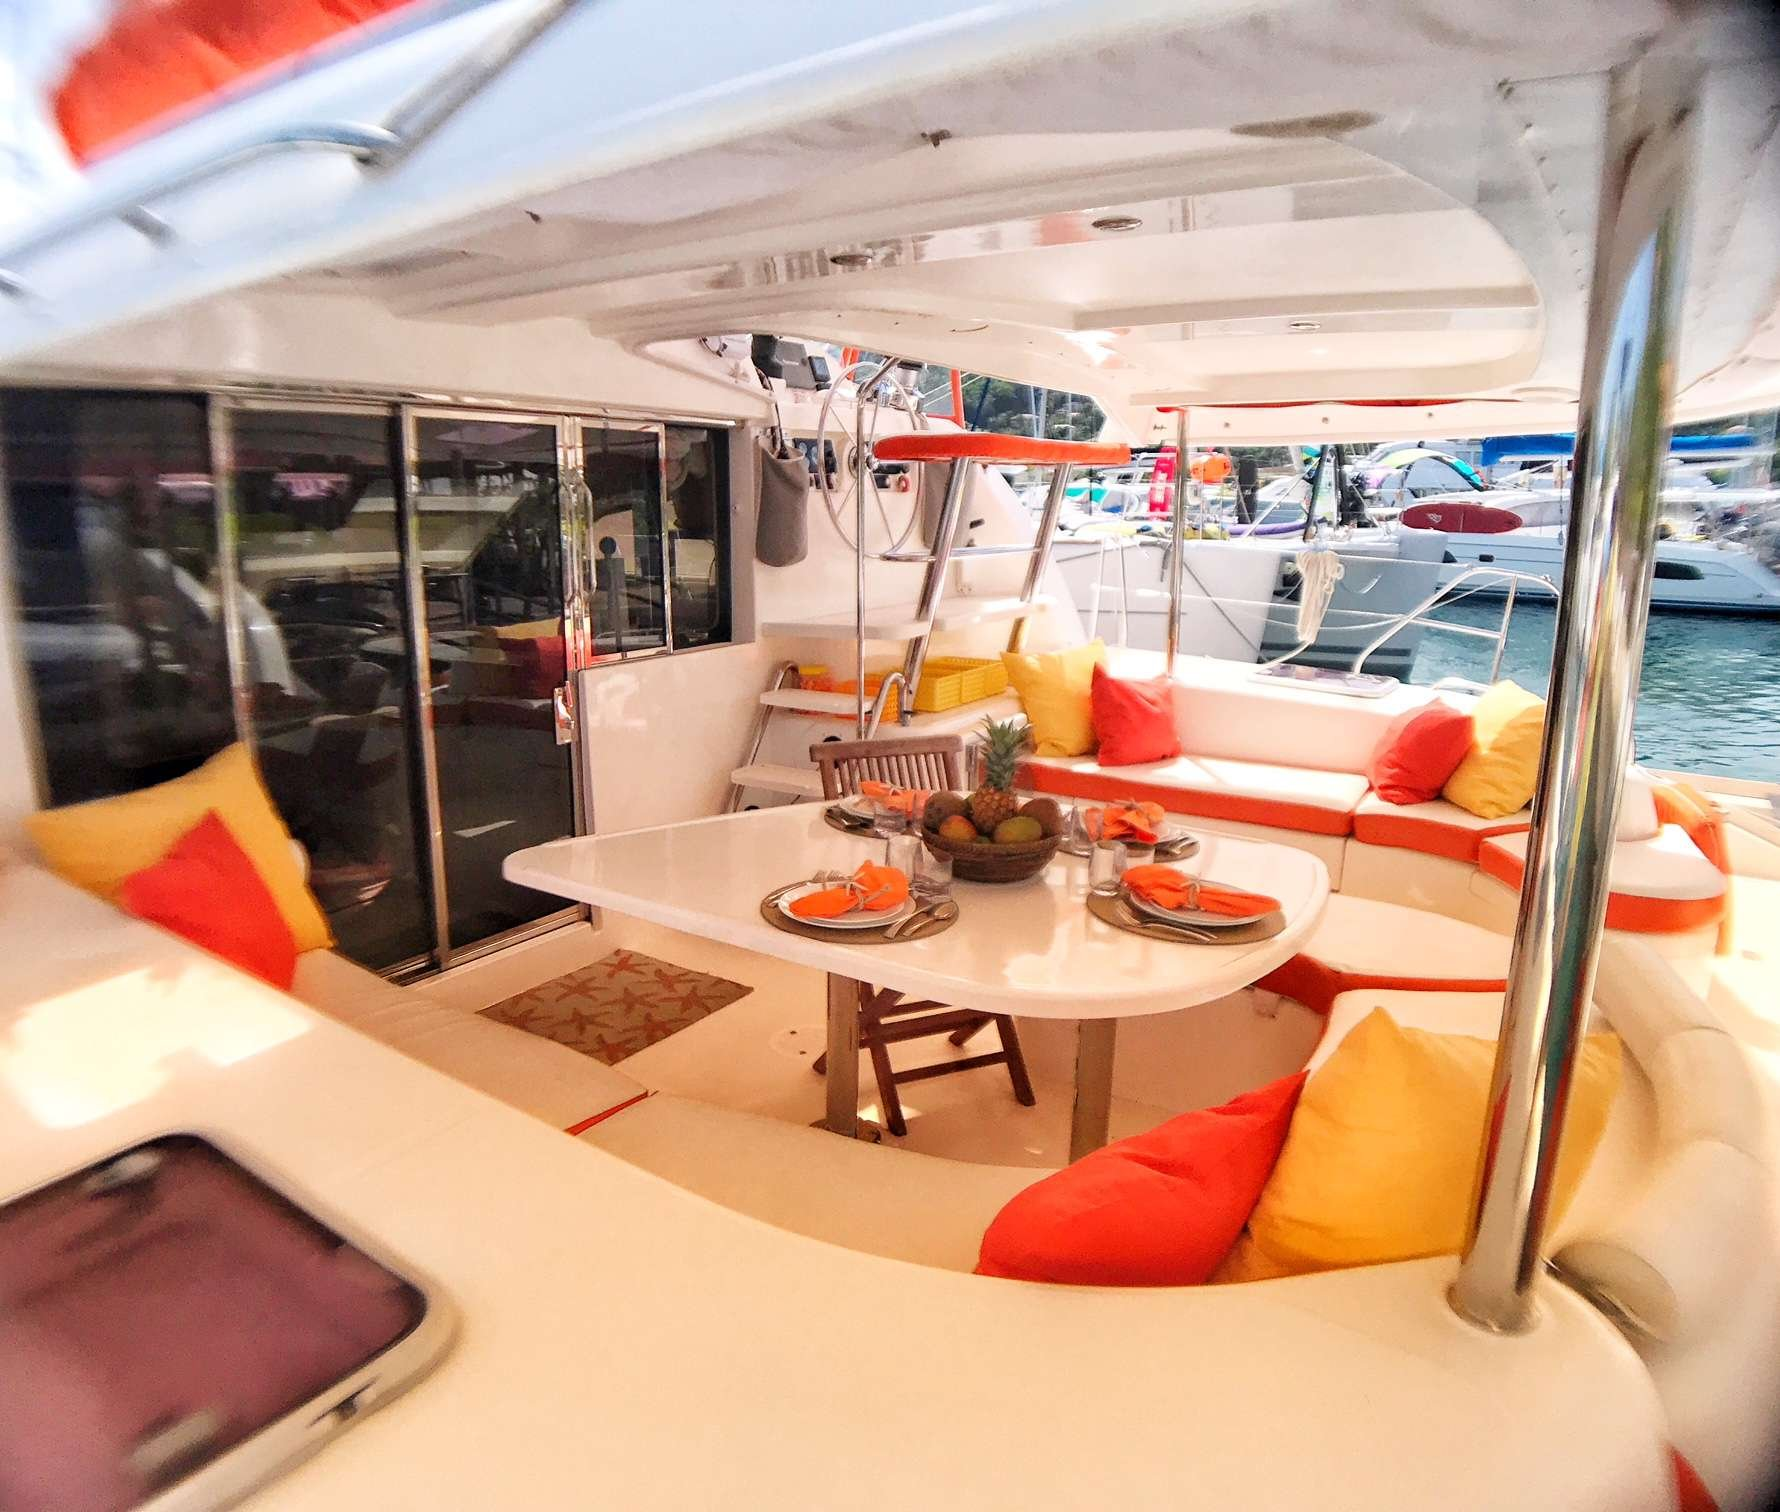 Catamaran Yacht 'STARFISH' Spacious cockpit with plenty of shade, 6 PAX, 2 Crew, 46.00 Ft, 14.00 Meters, Built 2008, Leopard, Refit Year 2019